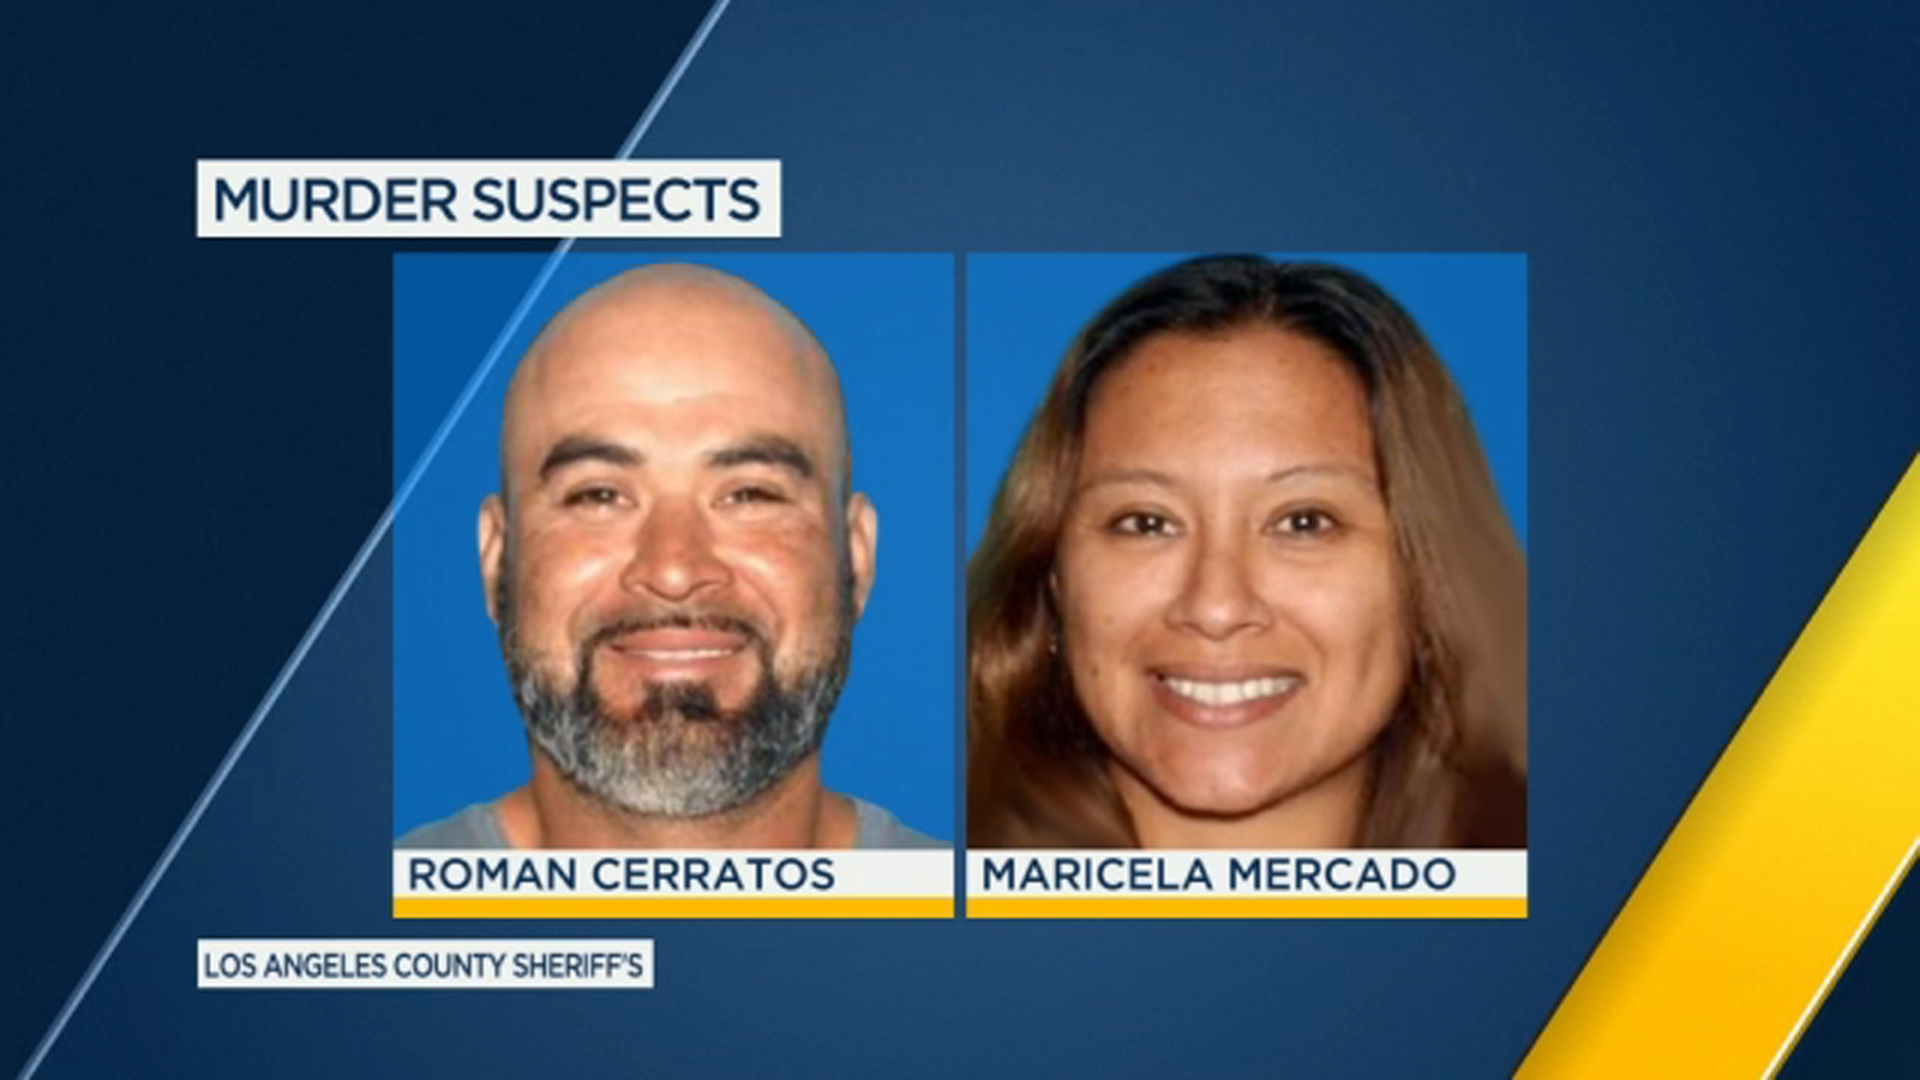 This is a photo of suspects Roman Cerratos and Maricela Mercado.